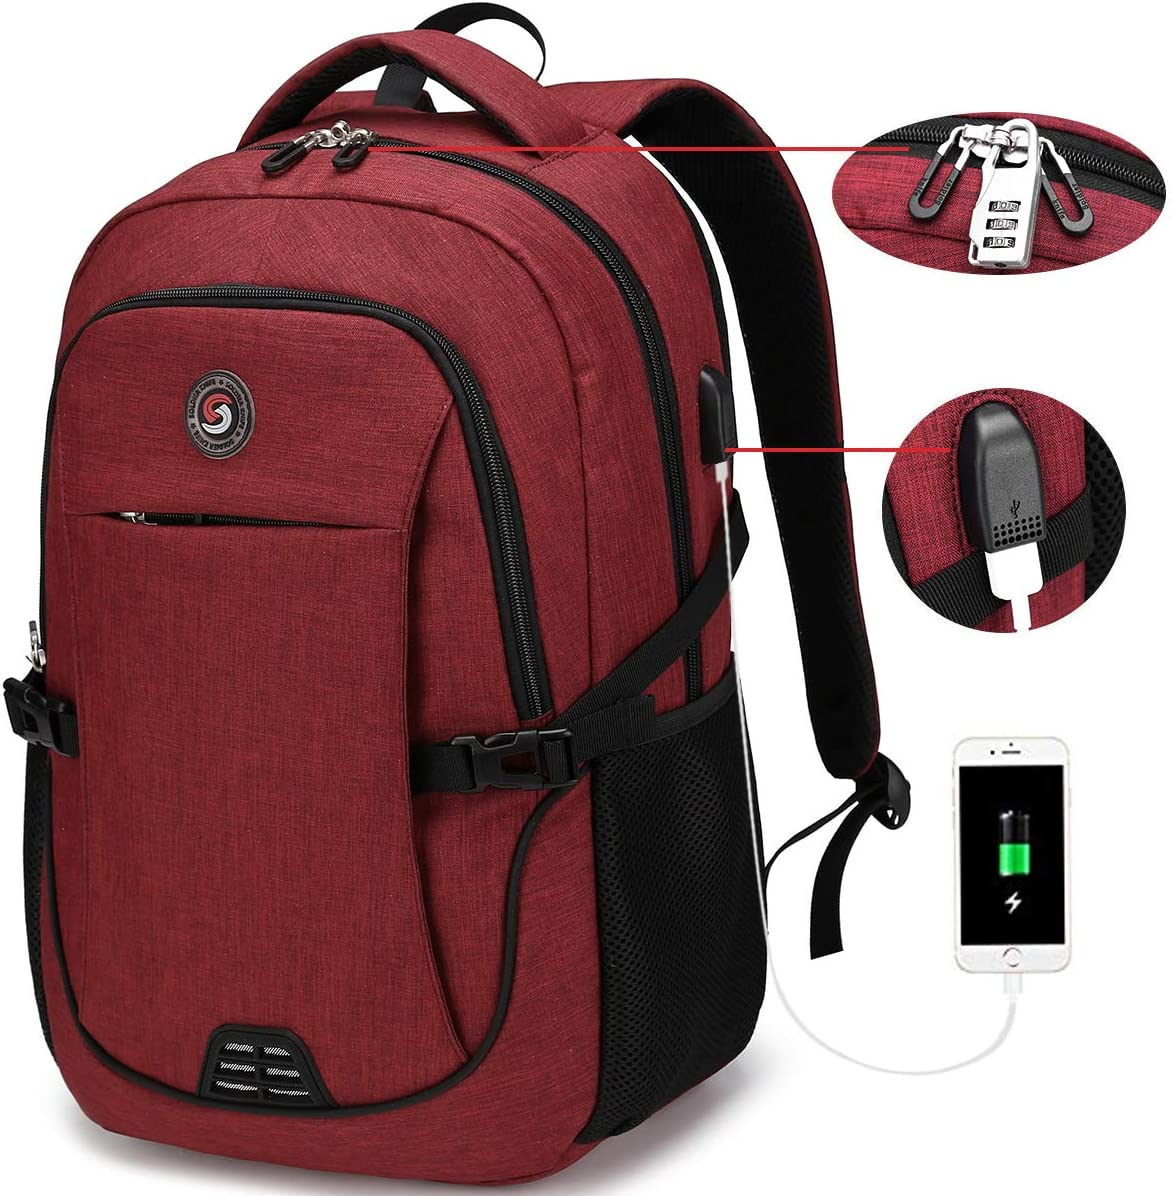 SOLDIERKNIFE Durable Waterproof Anti Theft Laptop Backpack Travel Backpacks Bookbag with usb Charging Port for Women & Men School College Students Backpack Fits 15.6 Inch Laptop Red